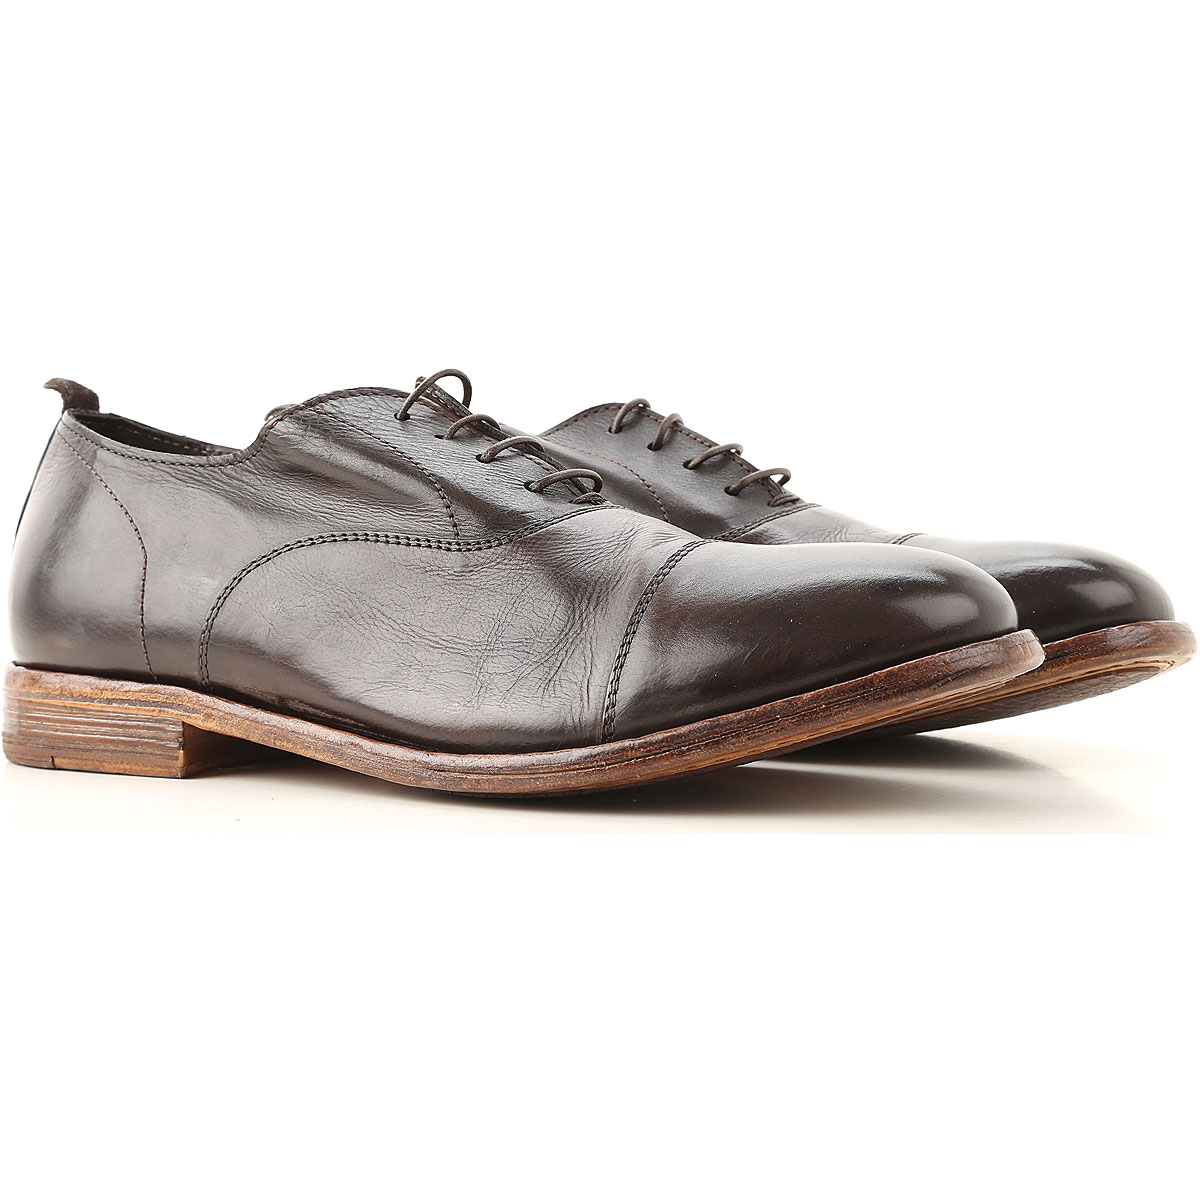 Moma Lace Up Shoes for Men Oxfords, Derbies and Brogues On Sale, Dark Brown, Leather, 2019, 10 7.5 8 9